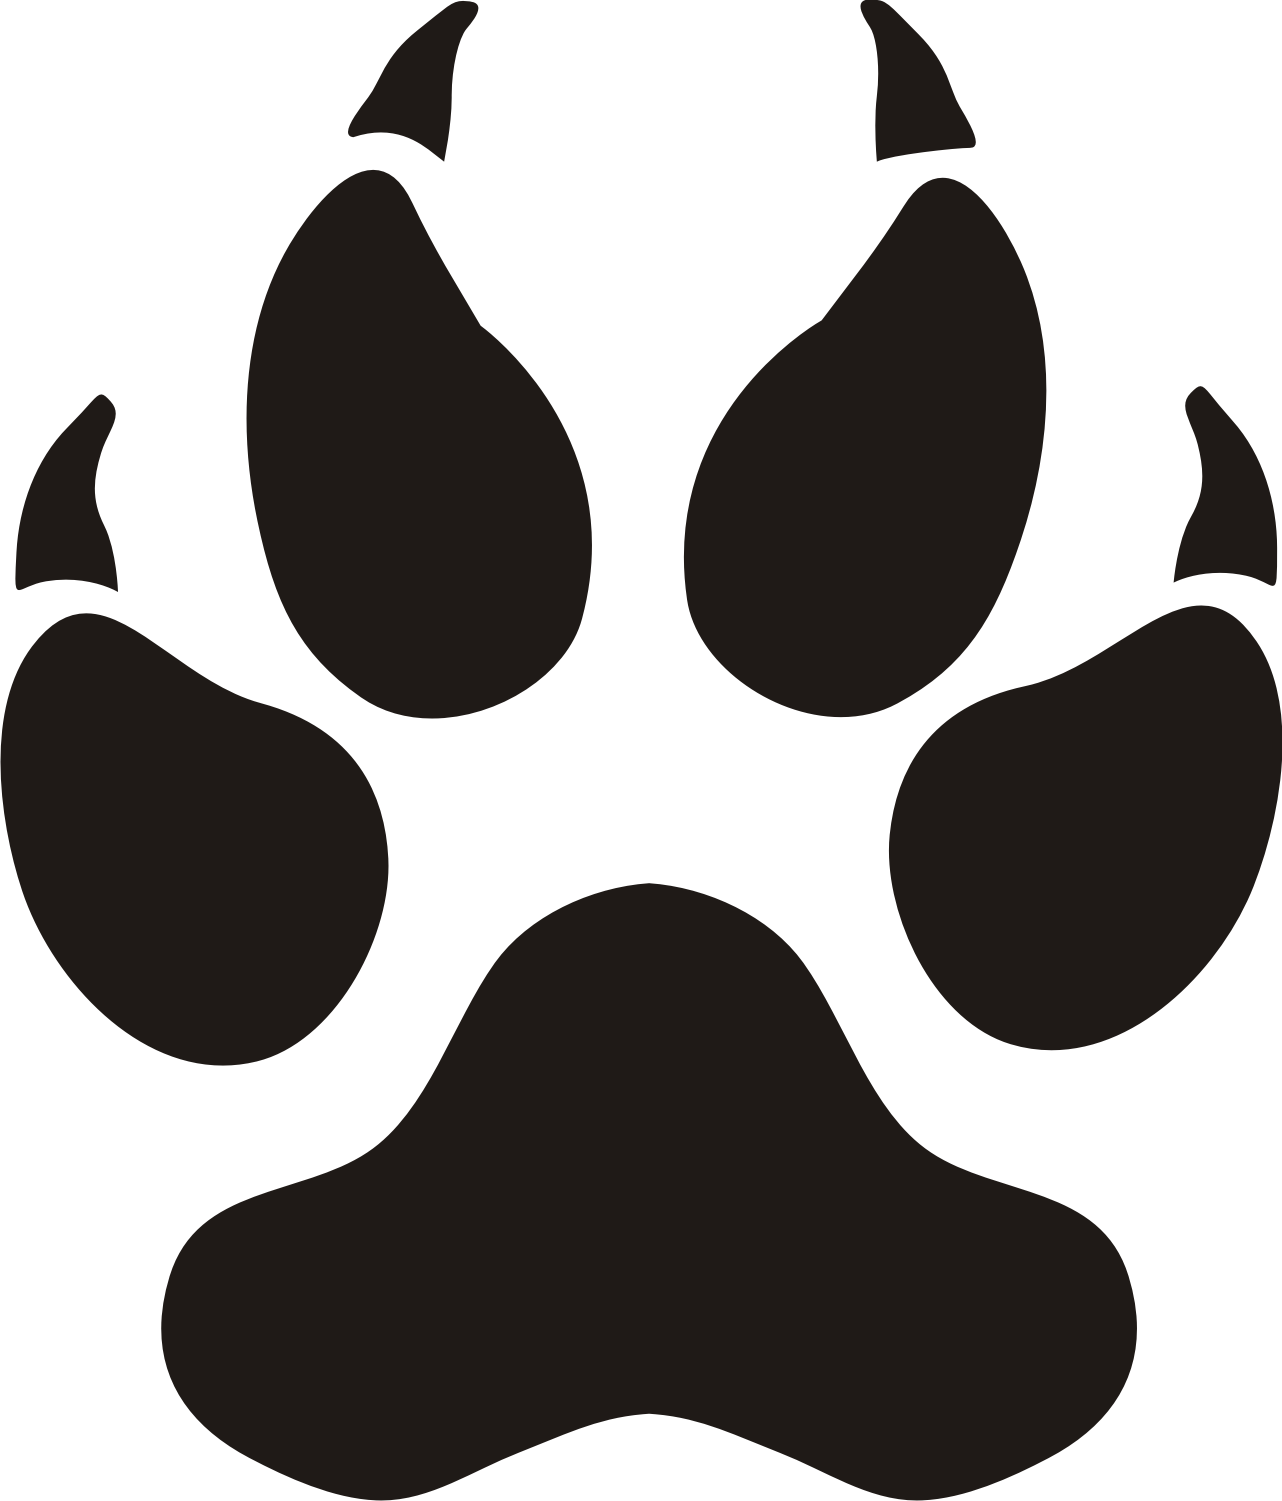 dog paw print clip art free download free 3 image 19250 clip art rh pinterest com Black Panther Cartoon free black panther clipart